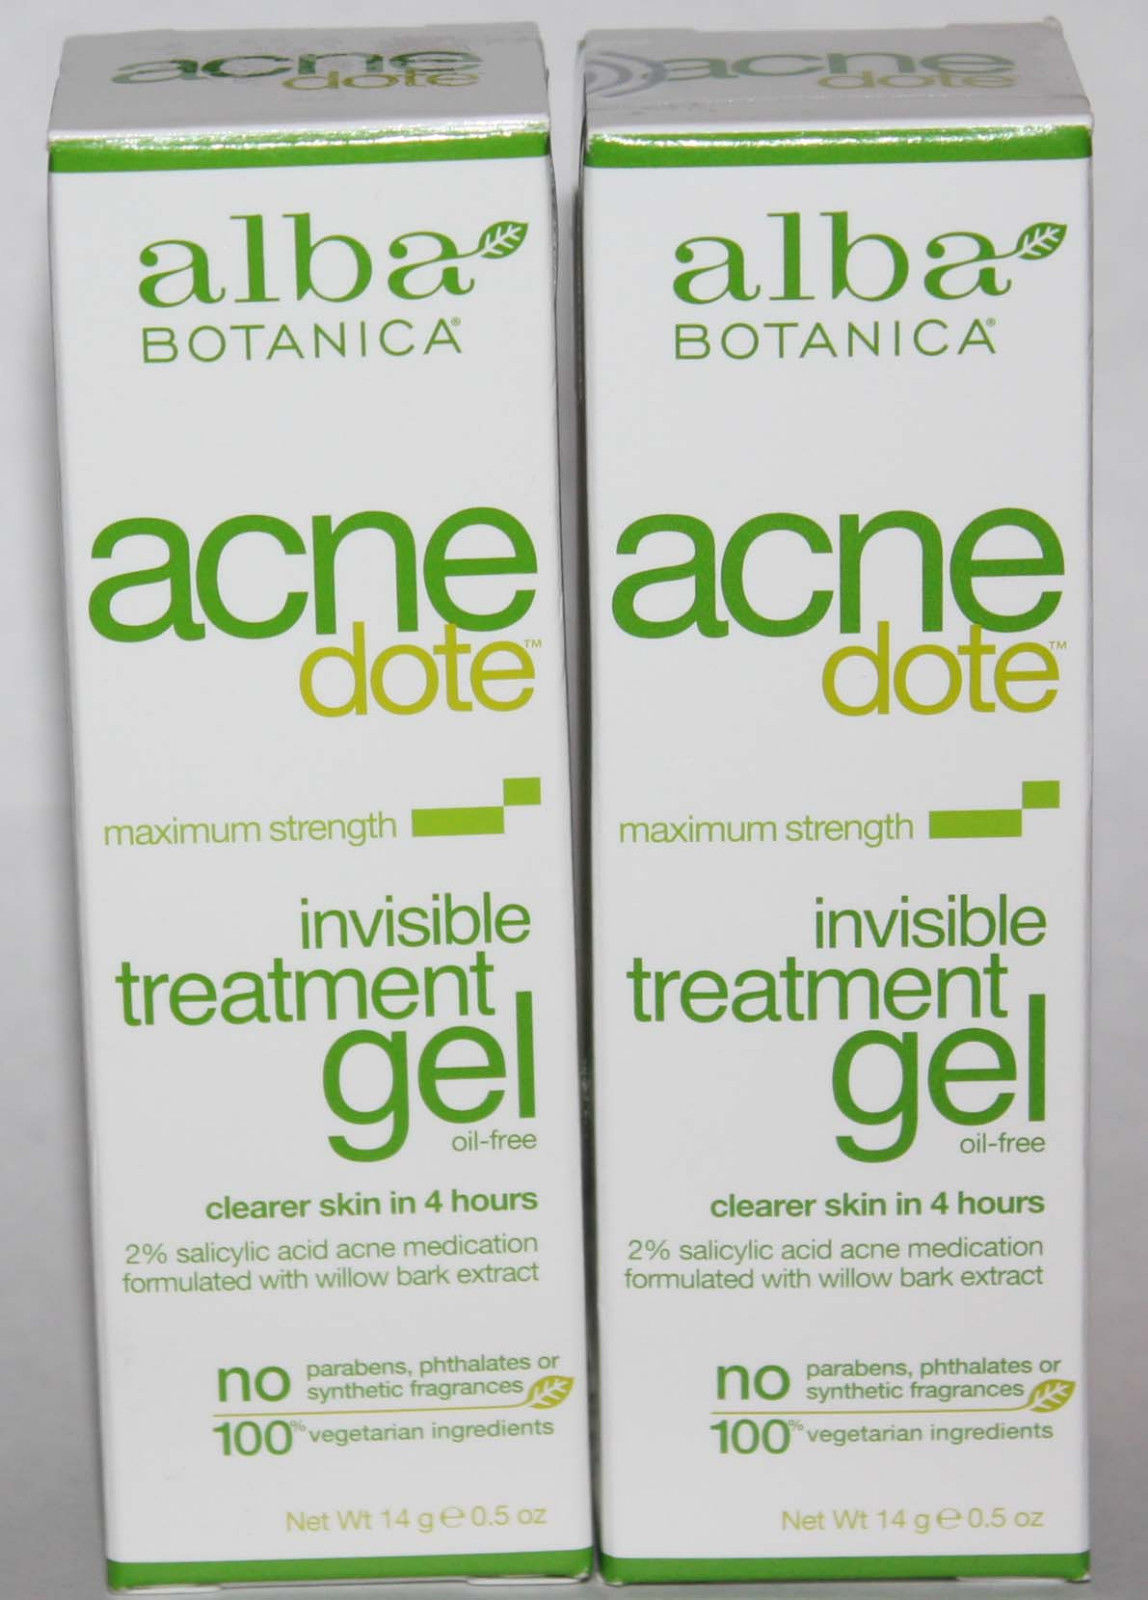 2 Alba Botanica Acnedote Maximum Strength Invisible Treatment Gel 0.5 oz Each 10816